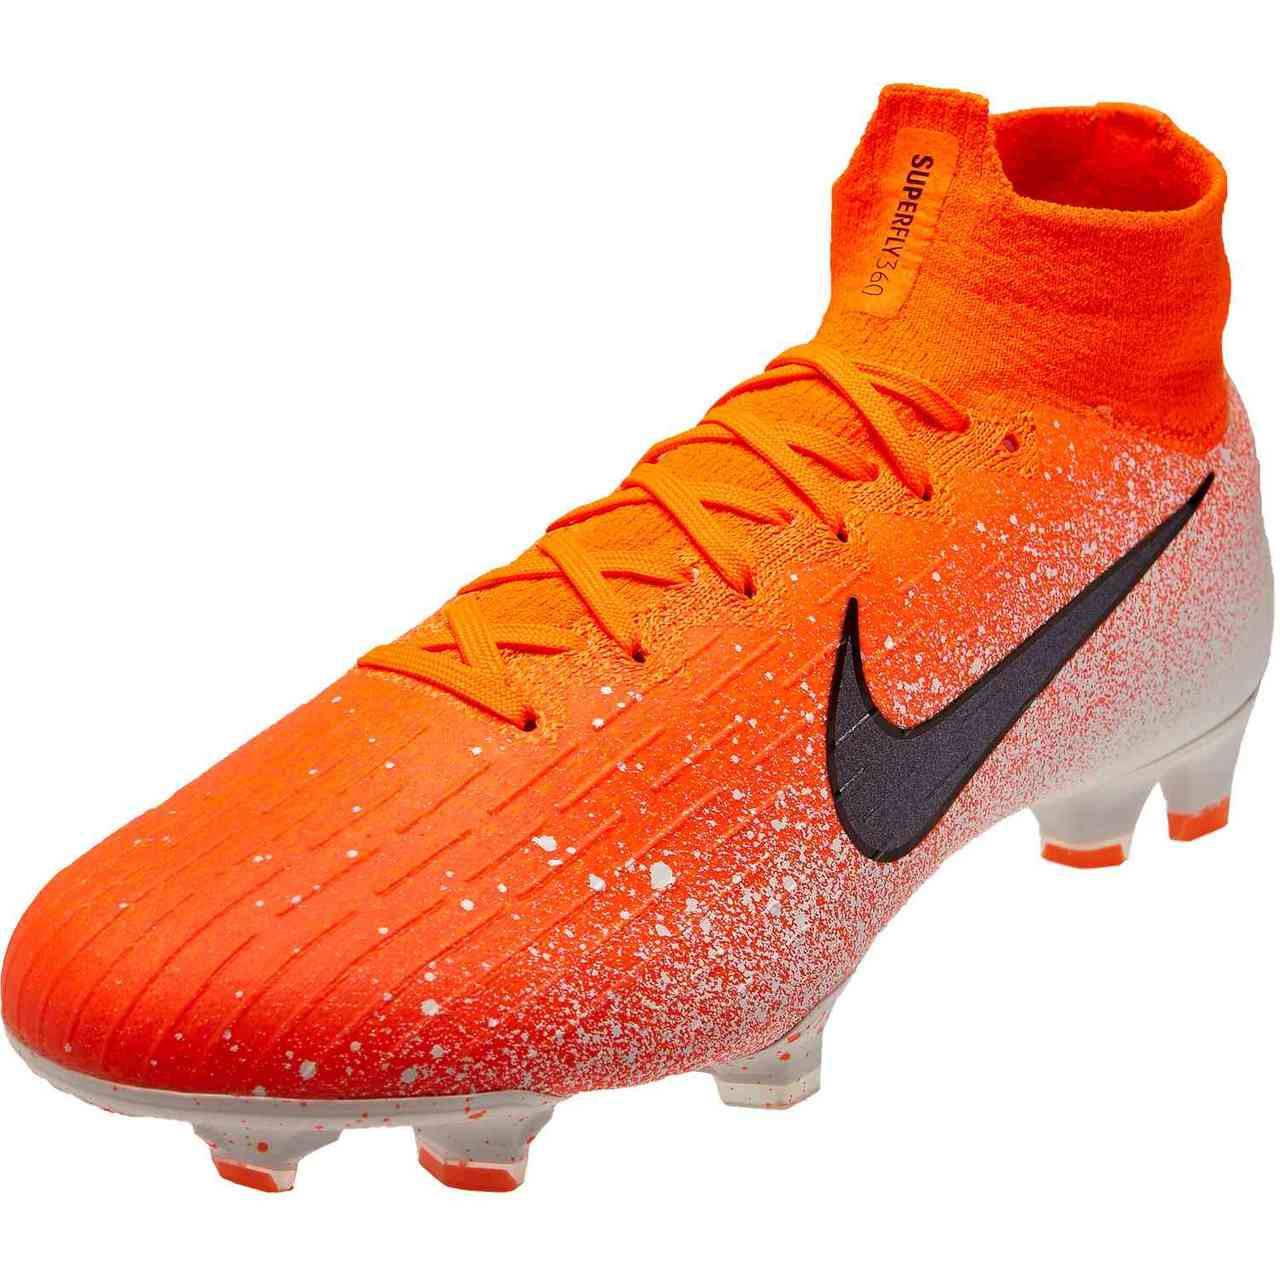 superior quality 4fb6b 0b2cc NIKE MERCURIAL SUPERFLY 6 Elite FG – Euphoria-Hyper crimson/white